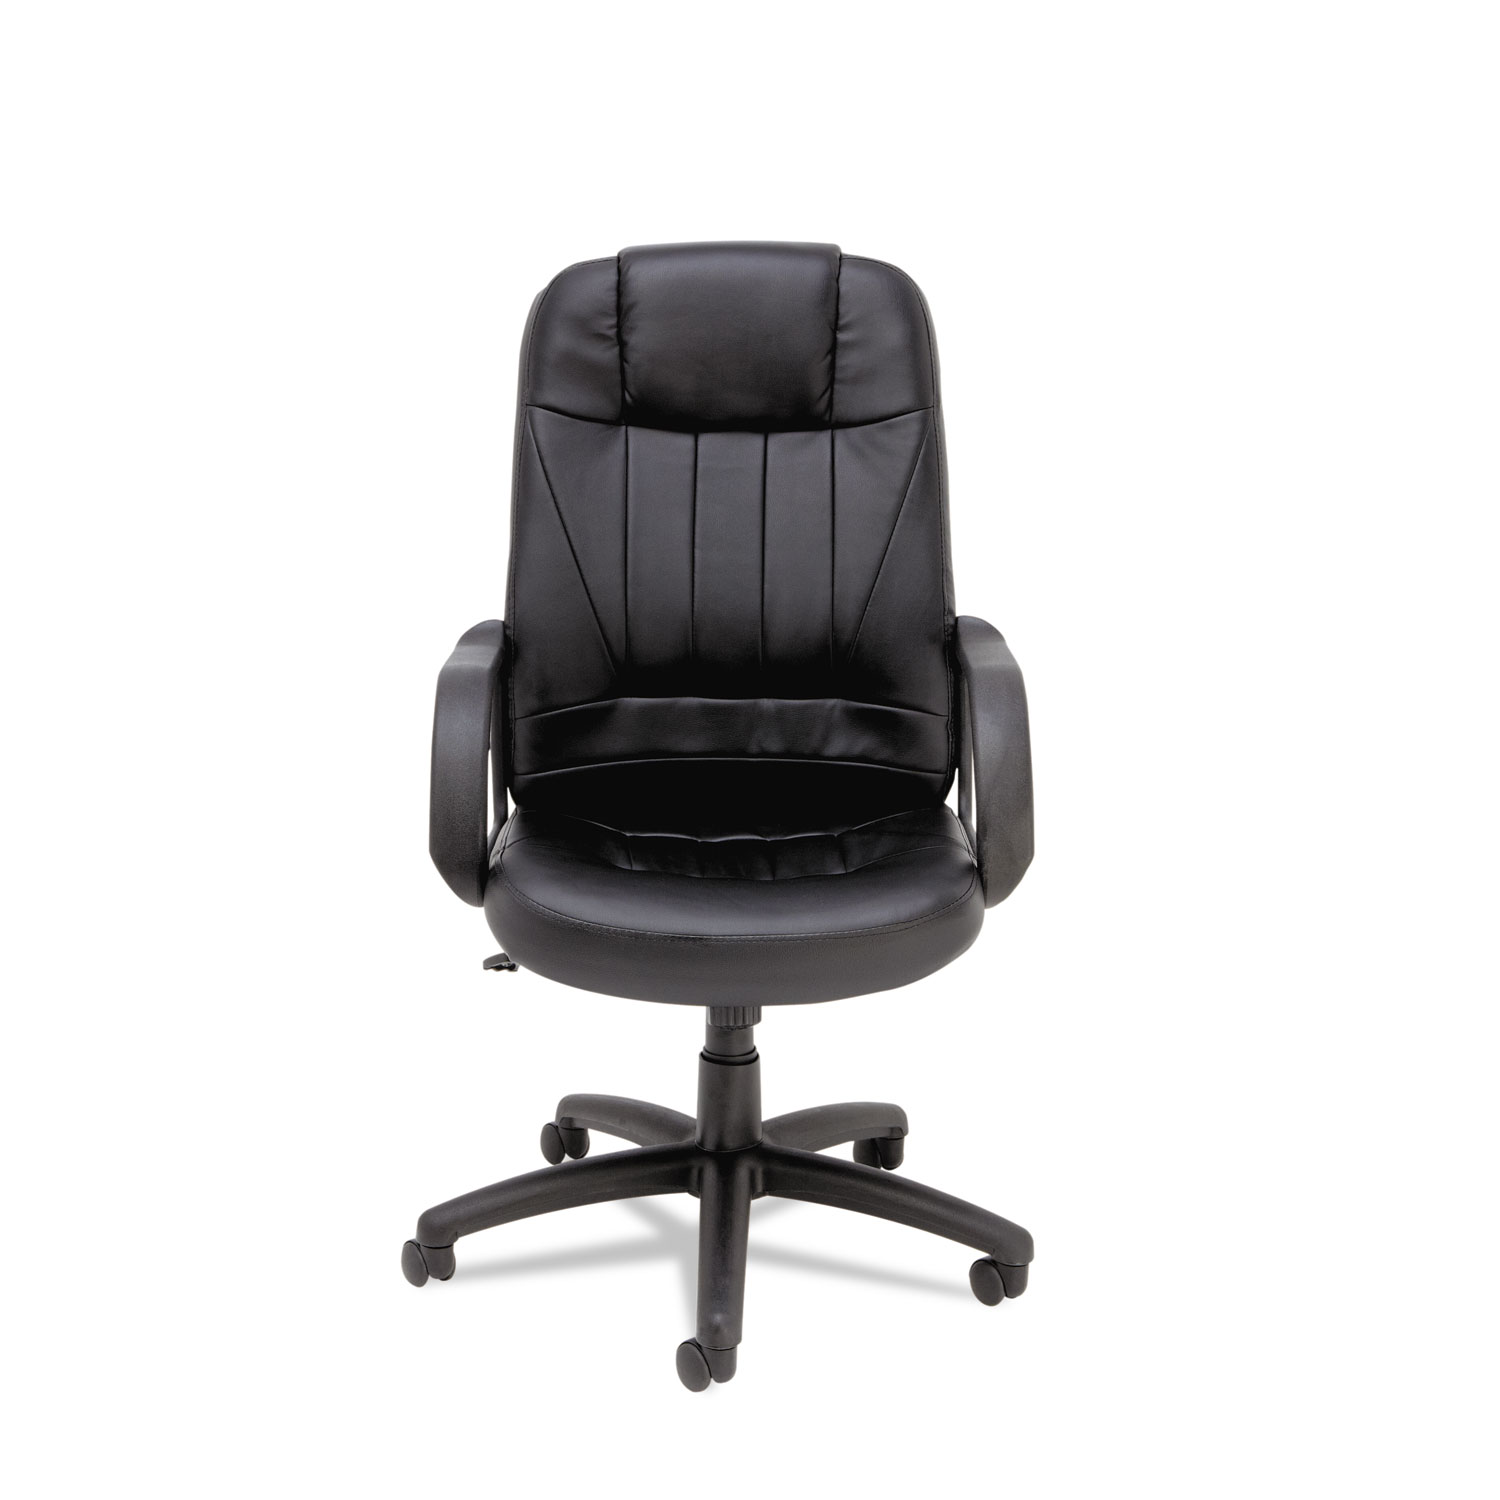 Sparis Executive High Back Swivel Tilt Leather Chair